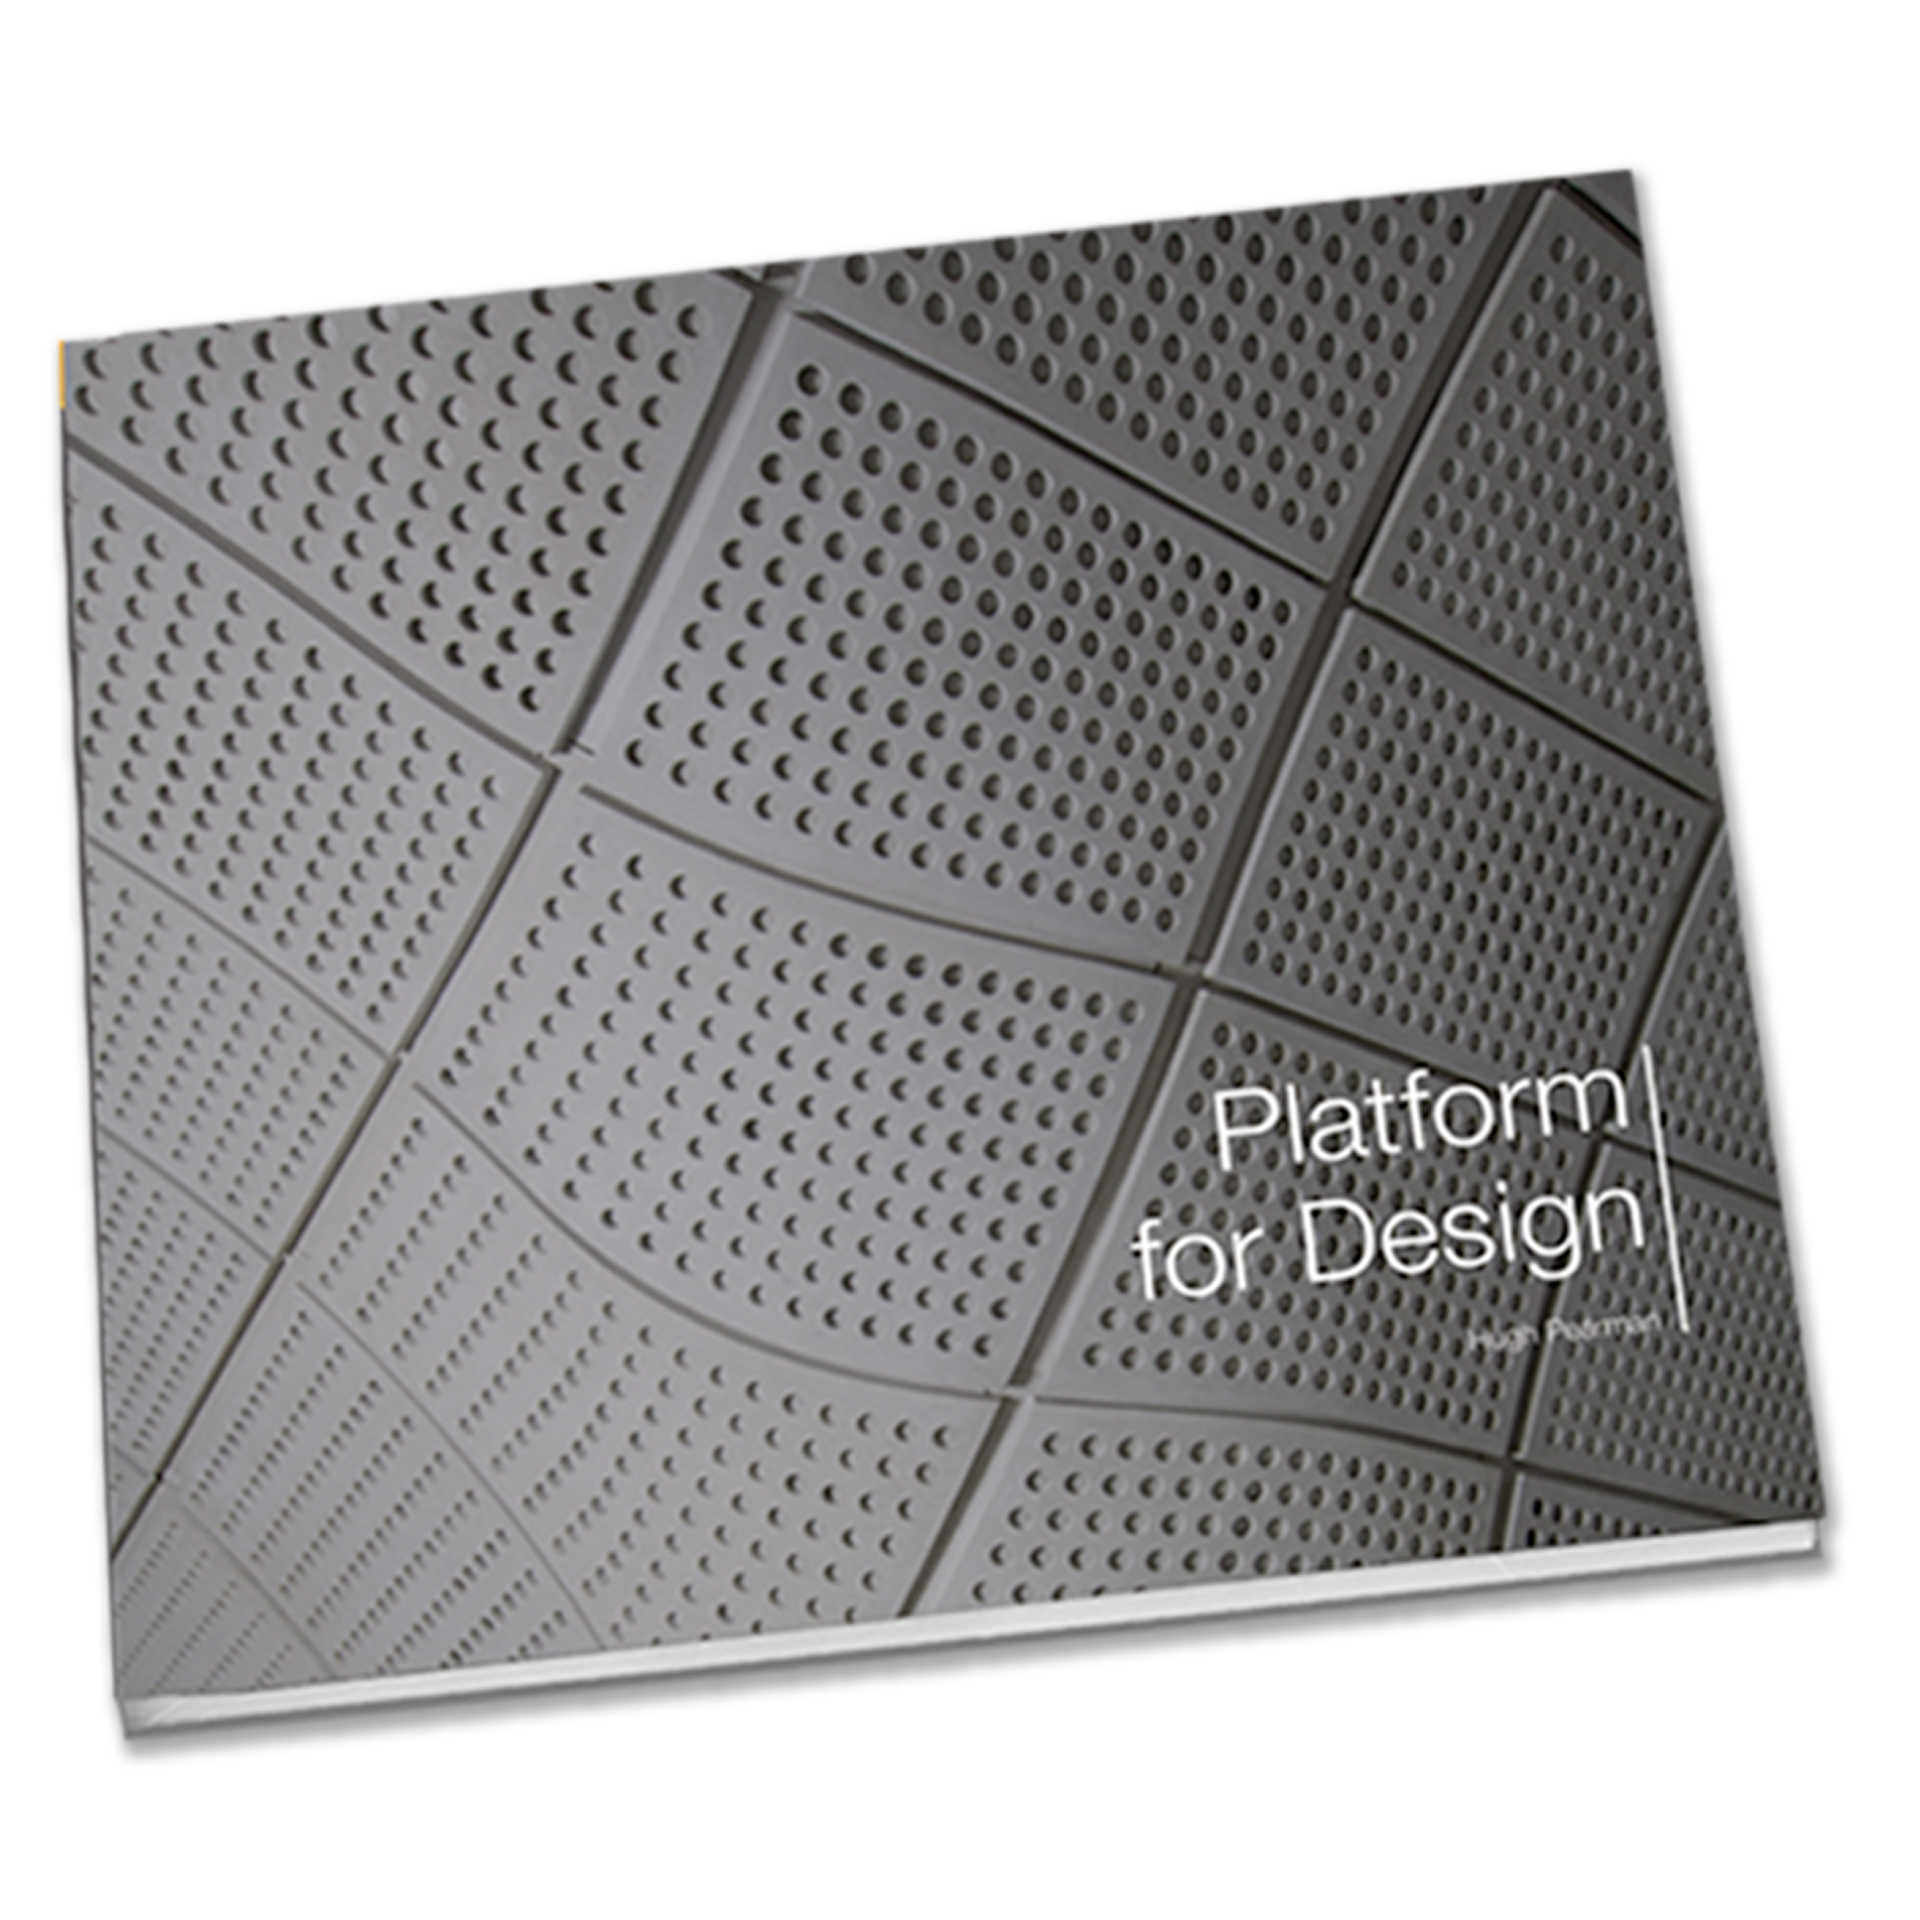 Platform for Design_book cover